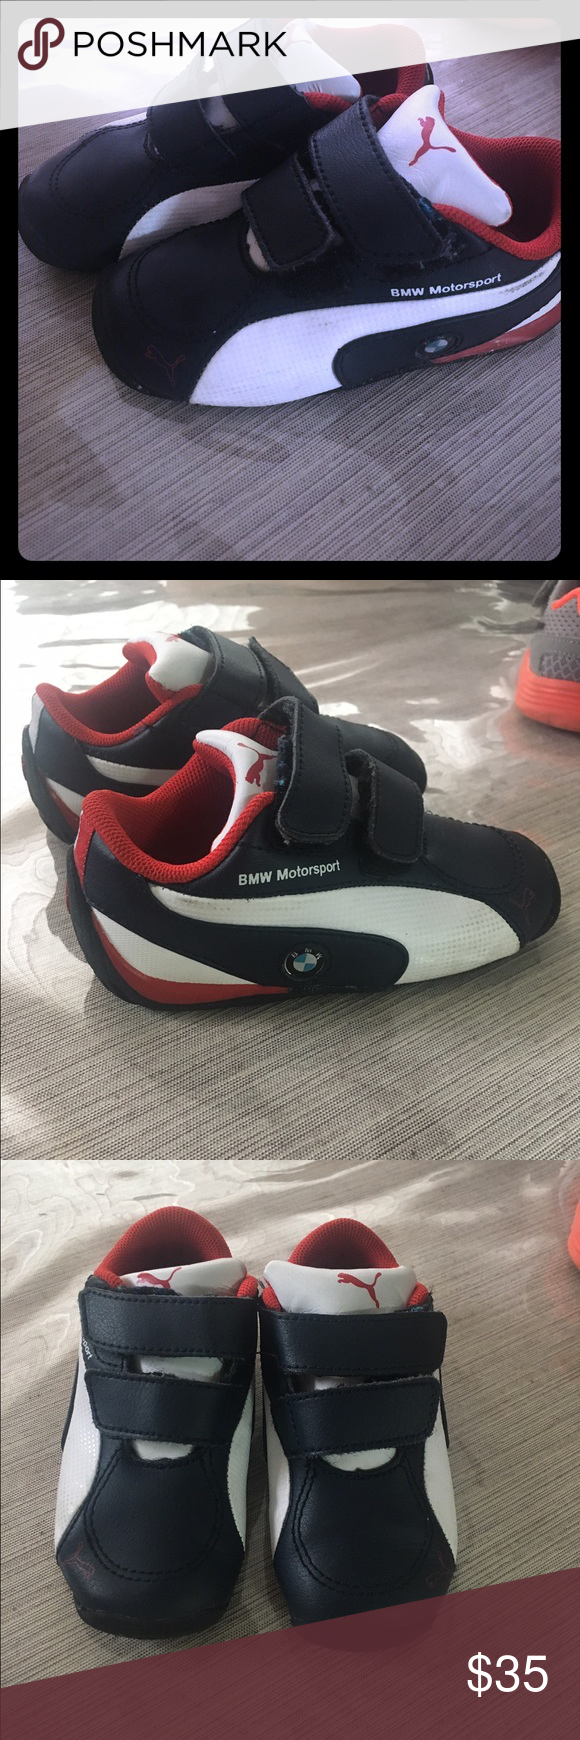 844c7710c69 Puma BMW Motorsport sneakers Puma BMW baby toddler sneakers. Barely Used